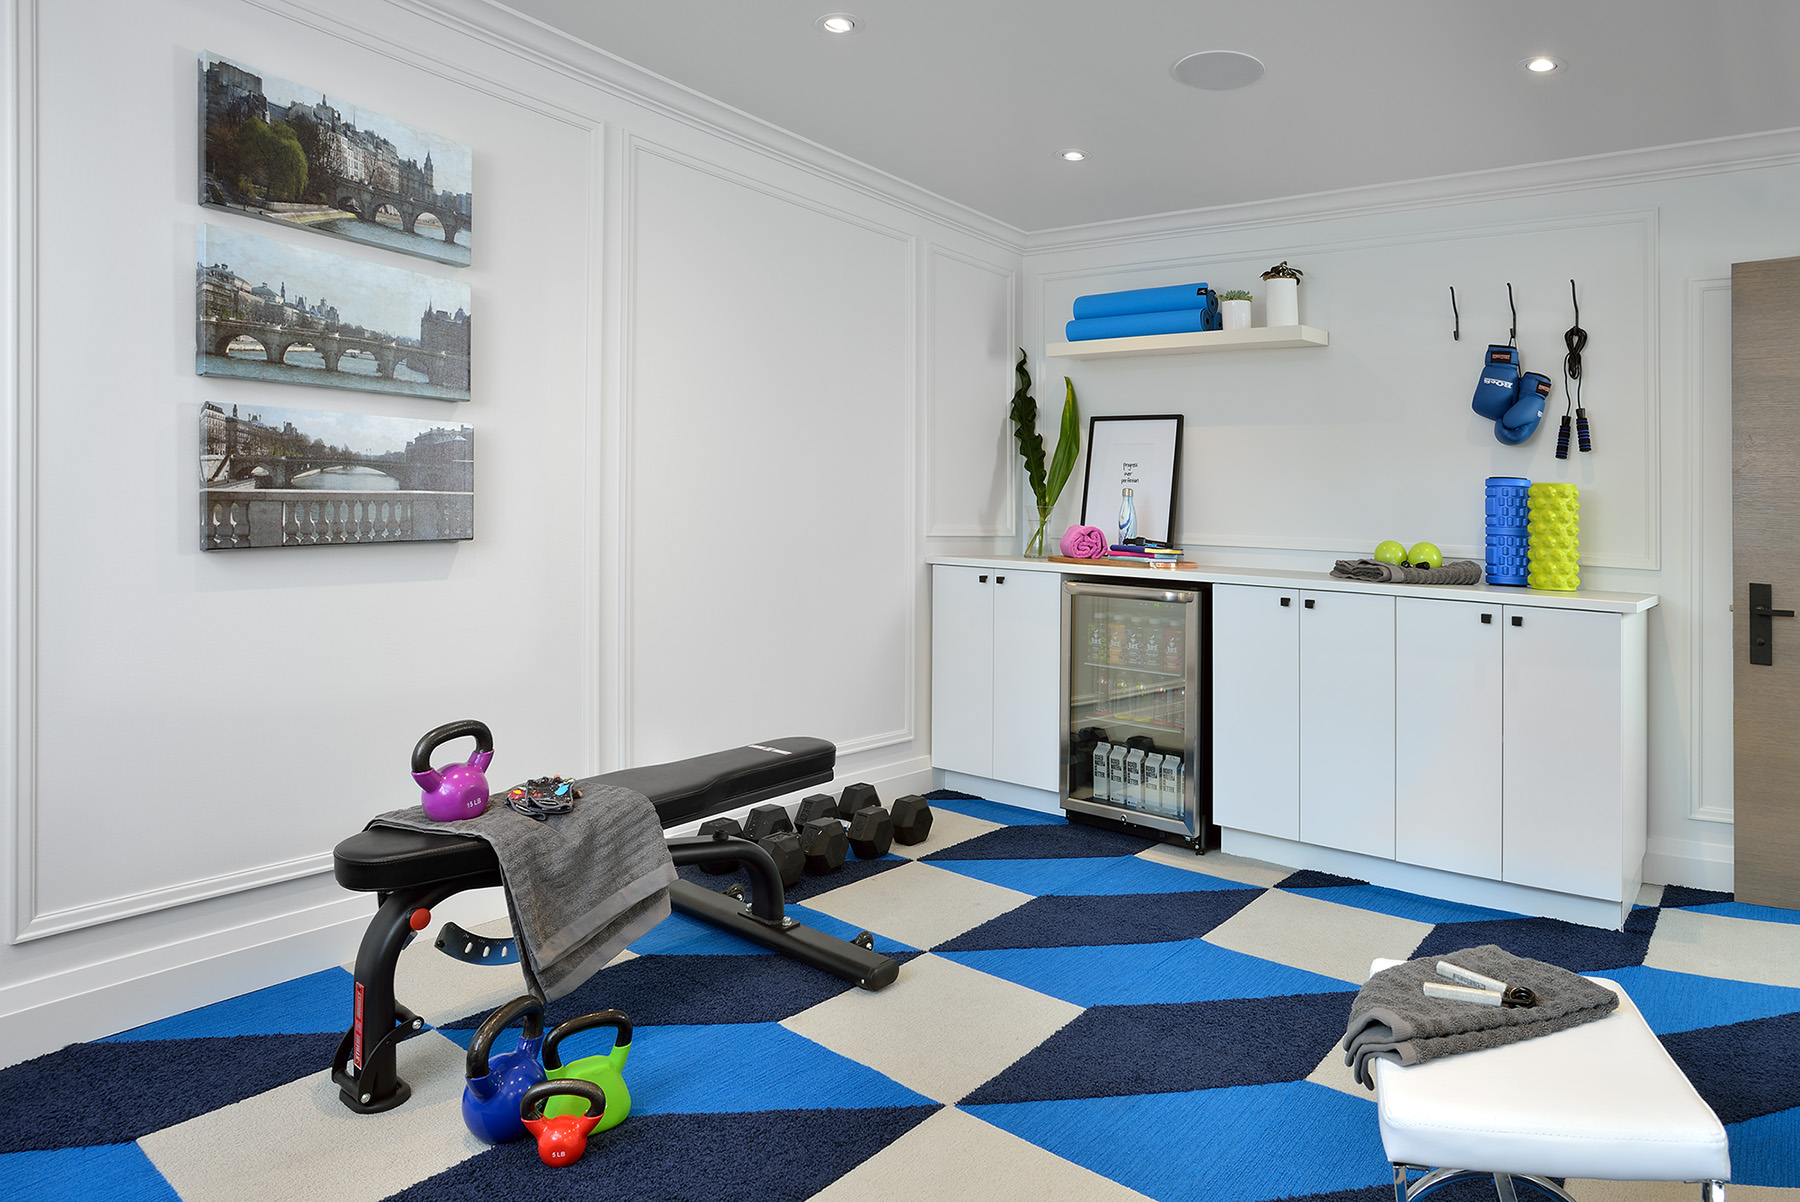 Lisa Canning uses Metrie's Very Square collection to create a Zen home gym. Image Source: Lisa Canning.